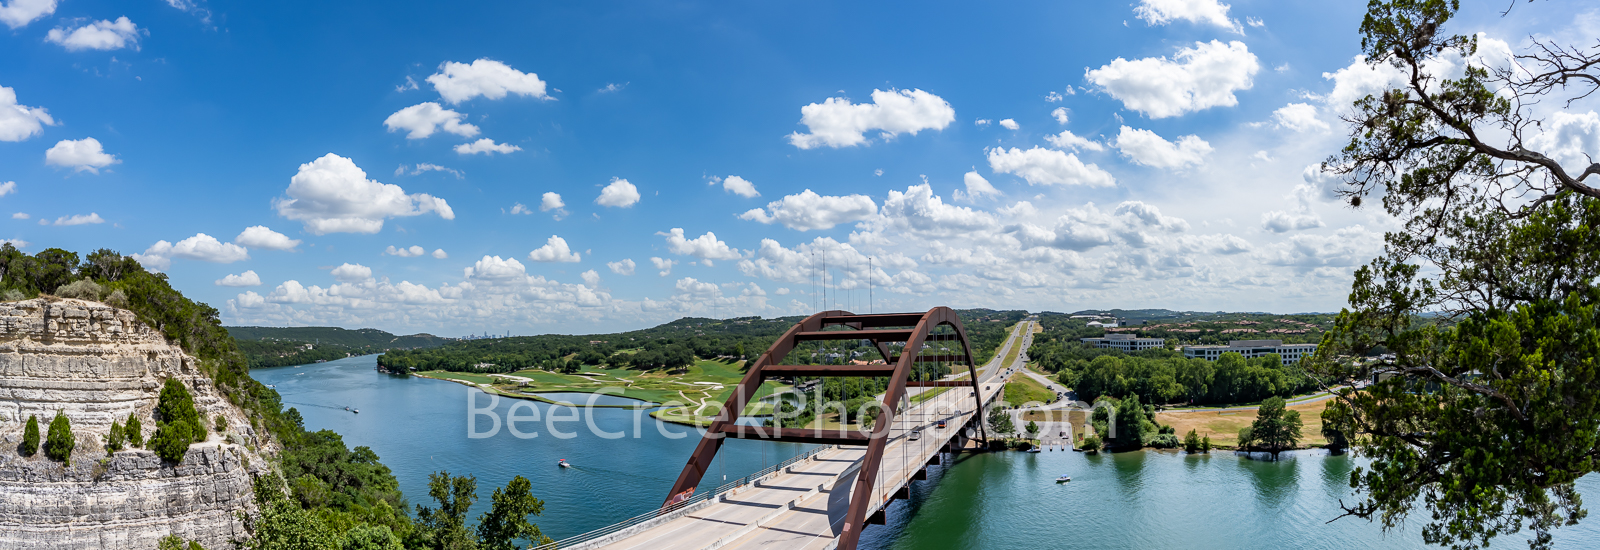 austin texas, 360 bridge, pennybacker bridge, 360 hwy, texas hill country, lake austin, downtown austin, city of austin, hill coutry, capital of texas highway, pennybacker overlook, panorama,percy v. , photo